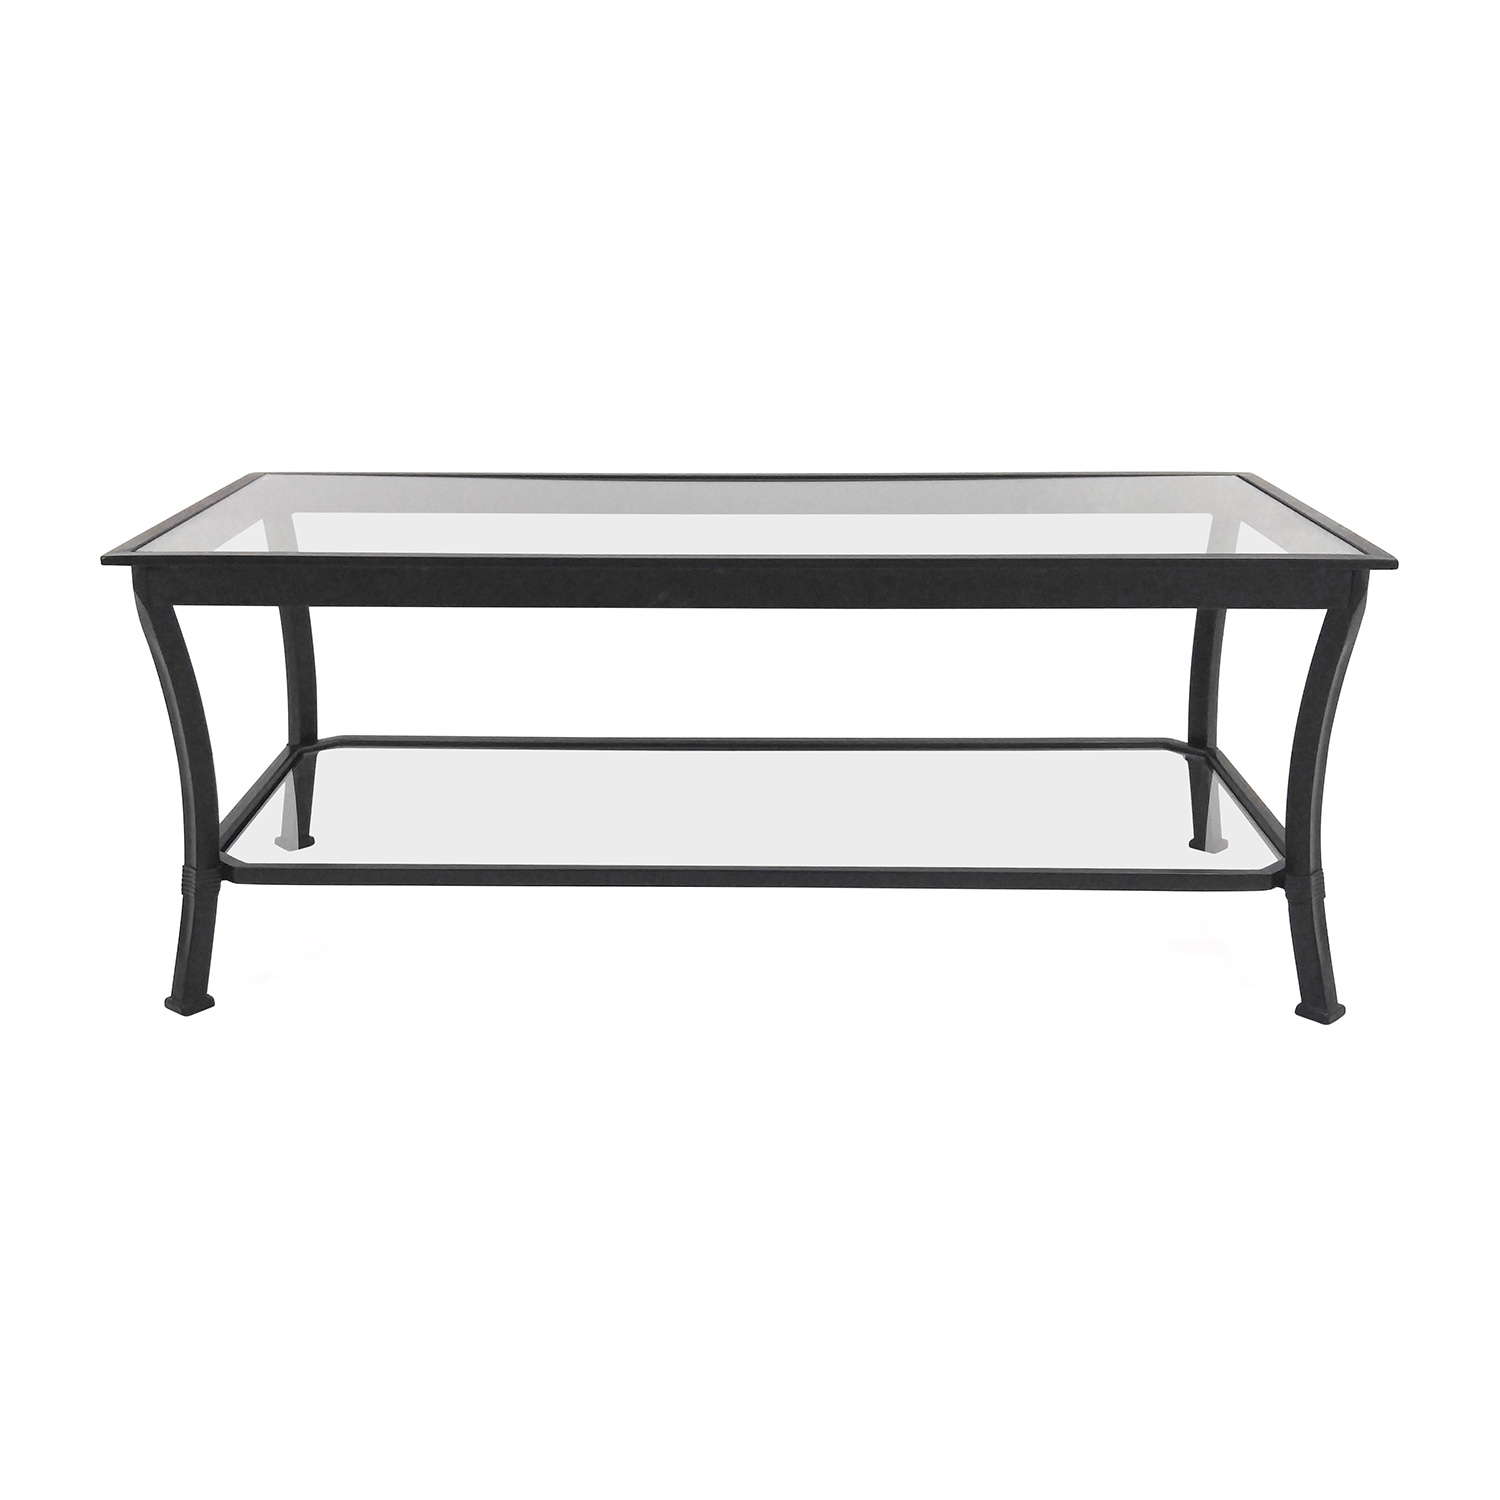 Unknown Brand Modern Glass Coffee Table discount